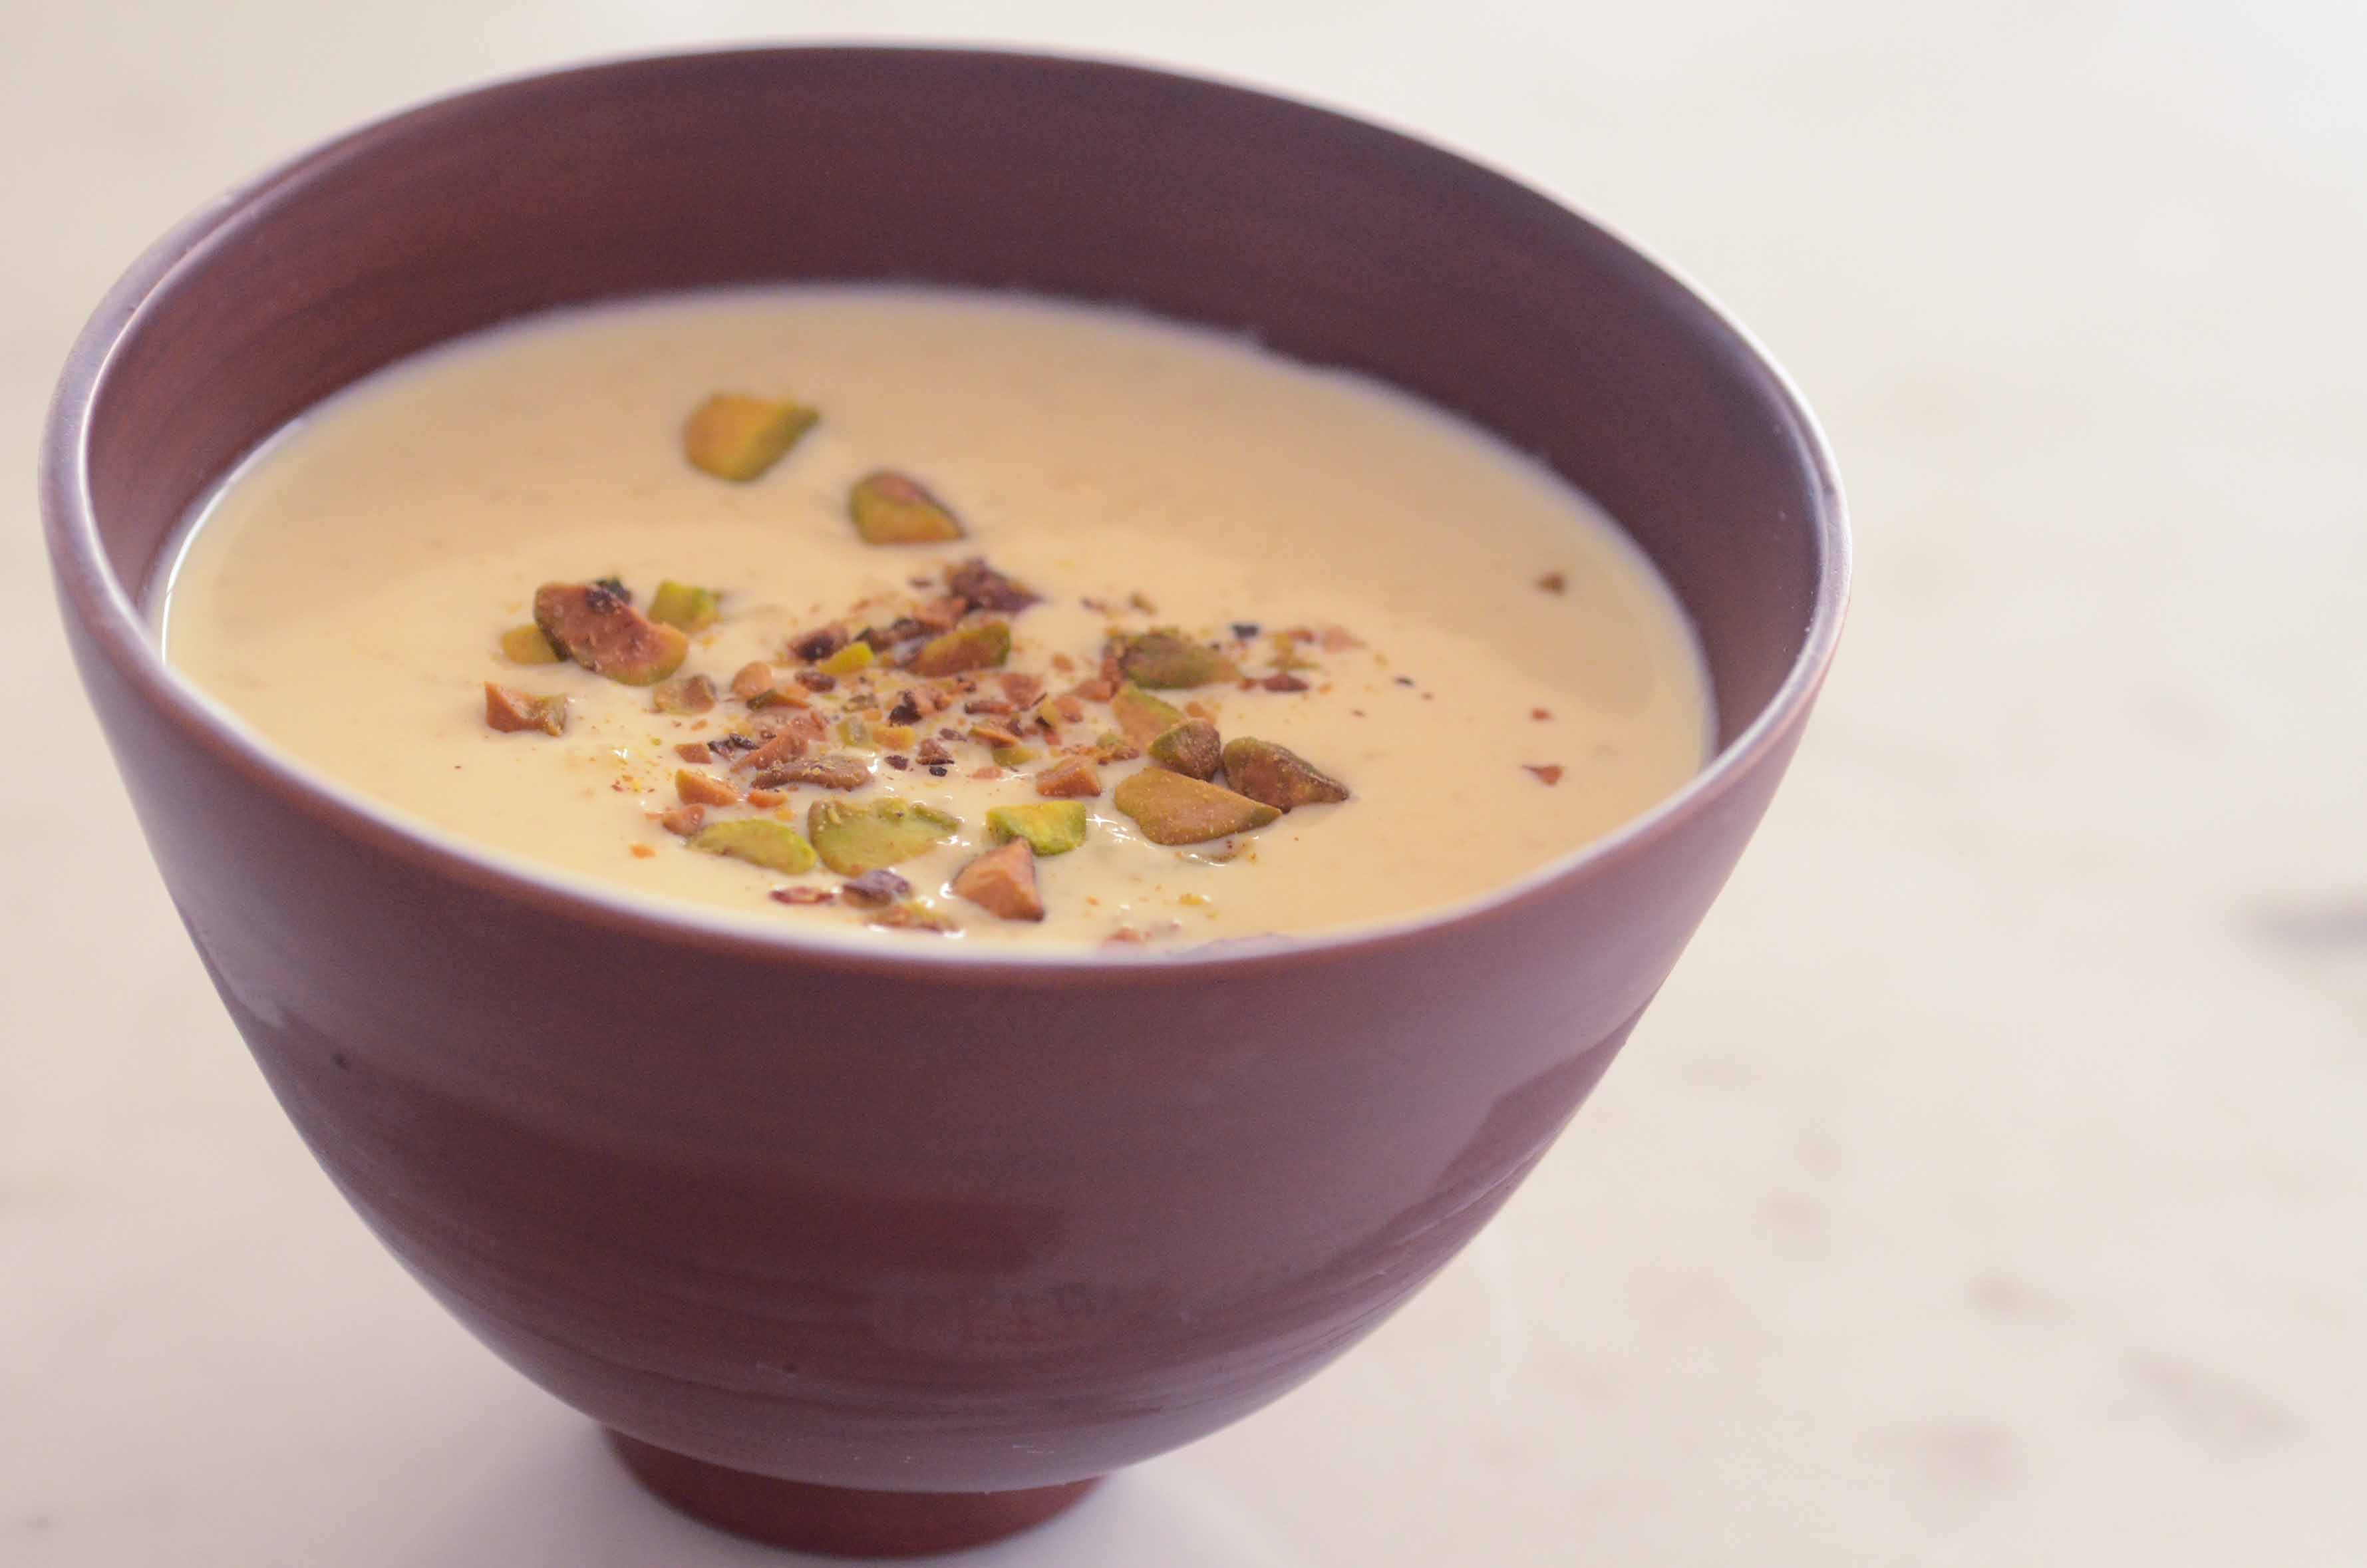 ... tbs of unsalted pistachios kheer indian rice pudding tips basmati rice